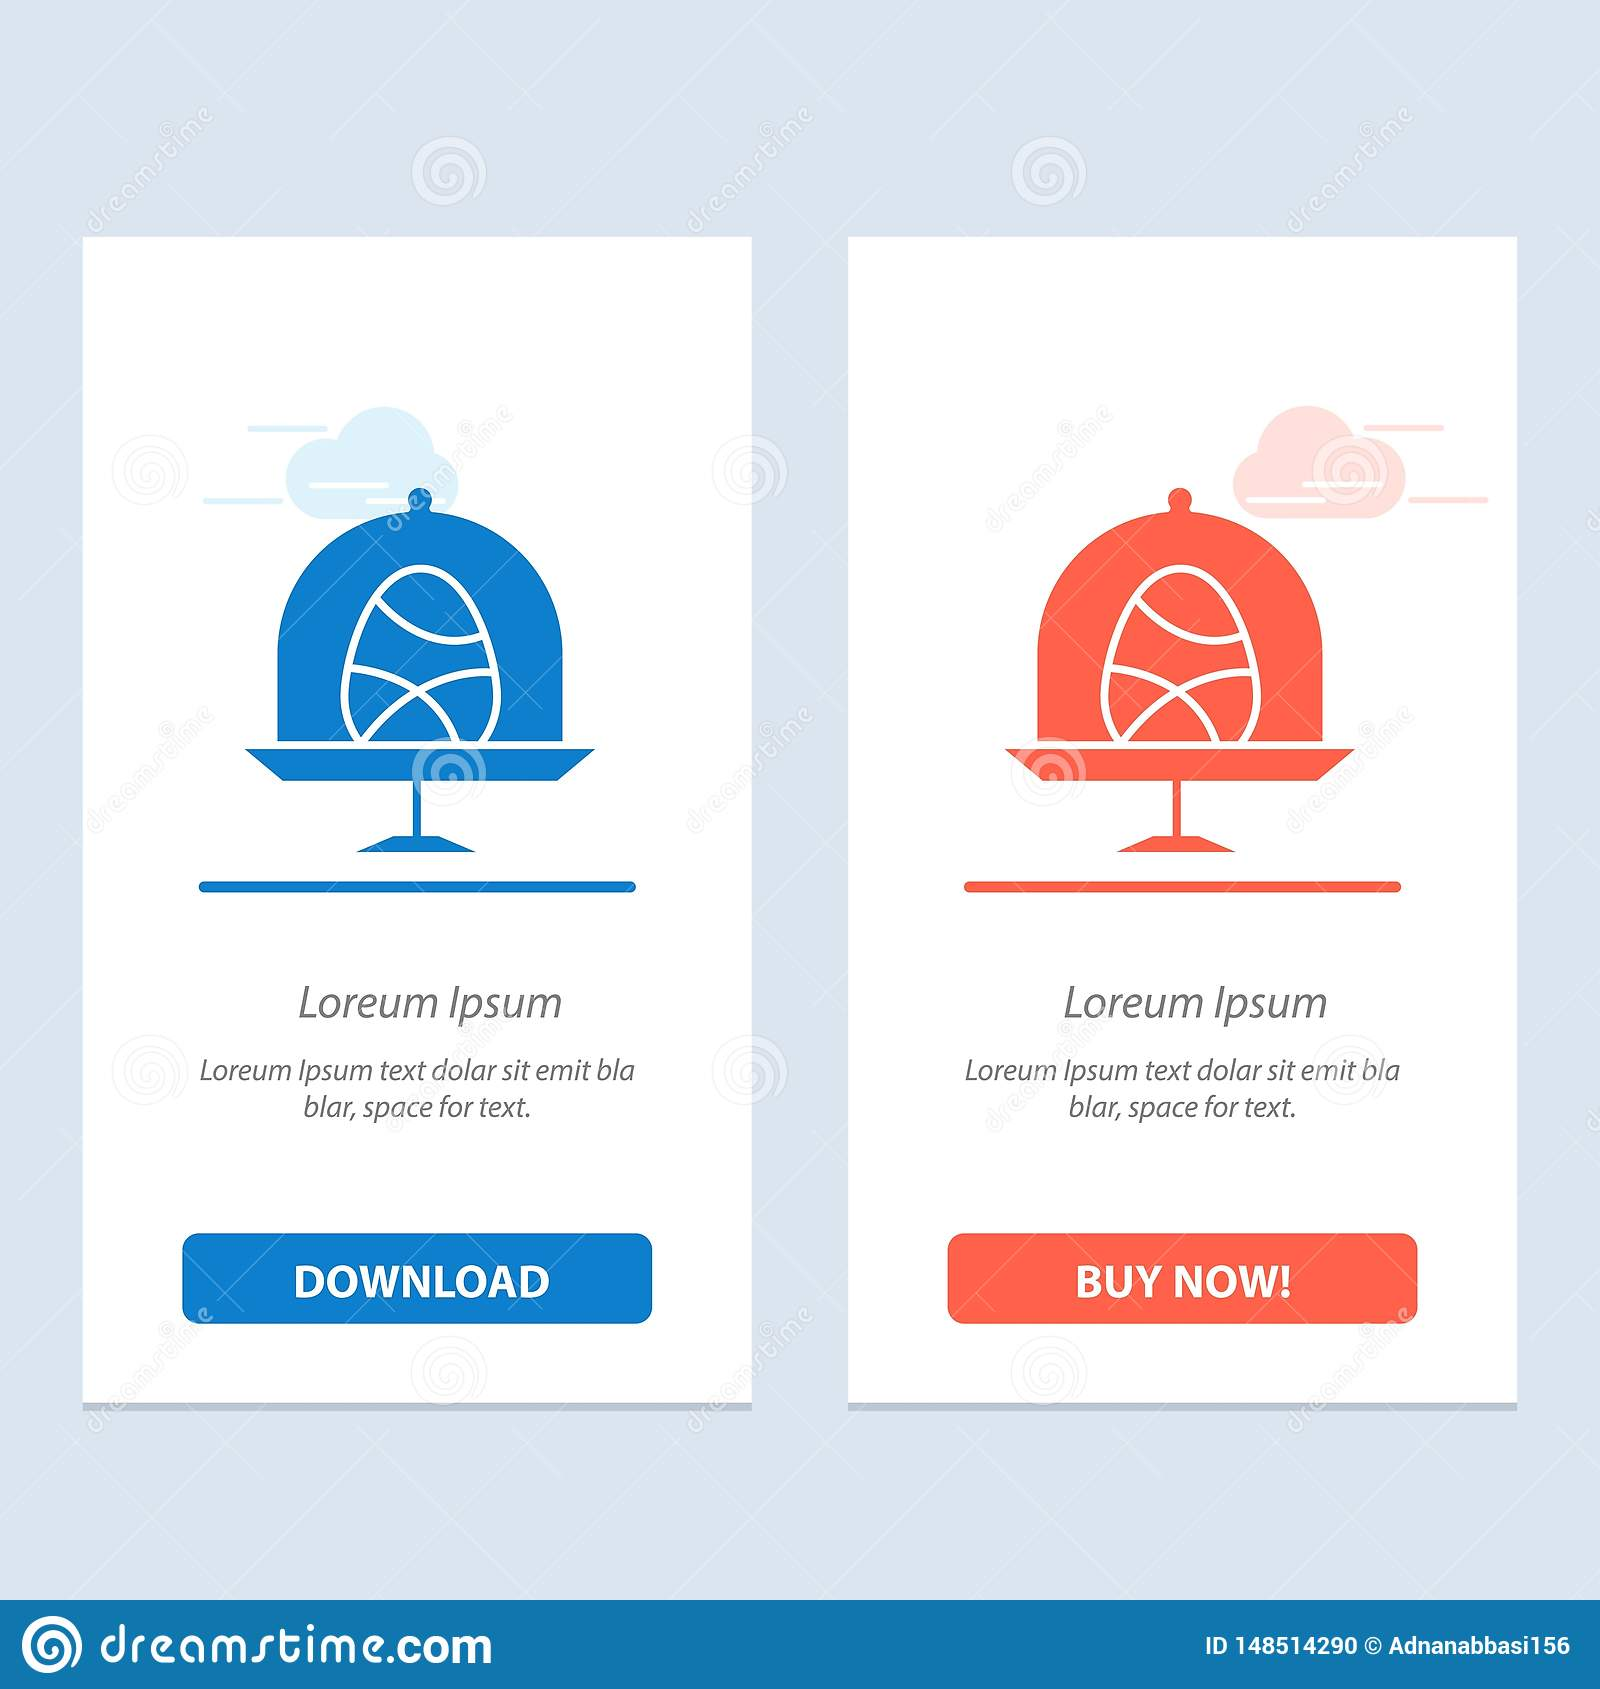 Disk, Egg, Food, Easter  Blue and Red Download and Buy Now web Widget Card Template